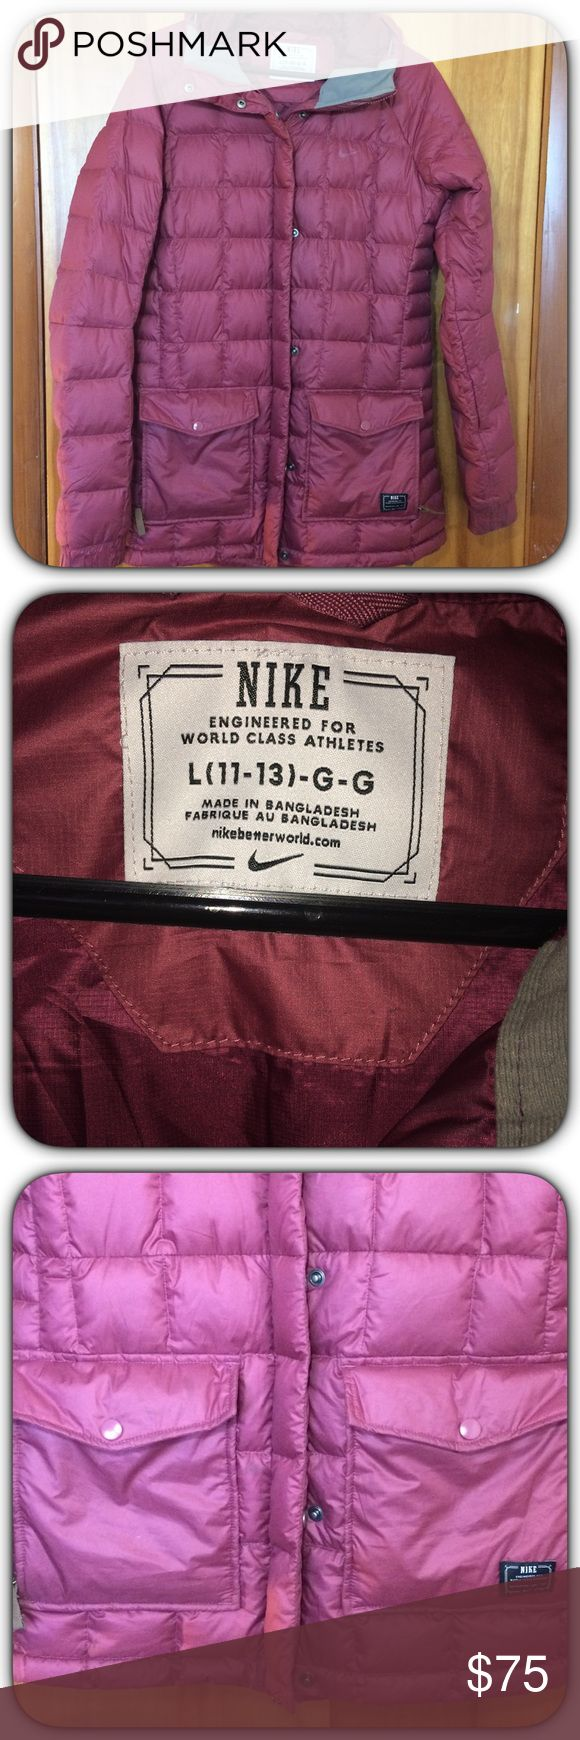 Nike Winter Jacket NWOT! Nike Winter Jacket. Never Worn W/Out Tags! Excellent Condition!!! Size Large! Mauve/Burgundy Color! Heavyweight! Equipped W/ Hood!!! Nike Jackets & Coats